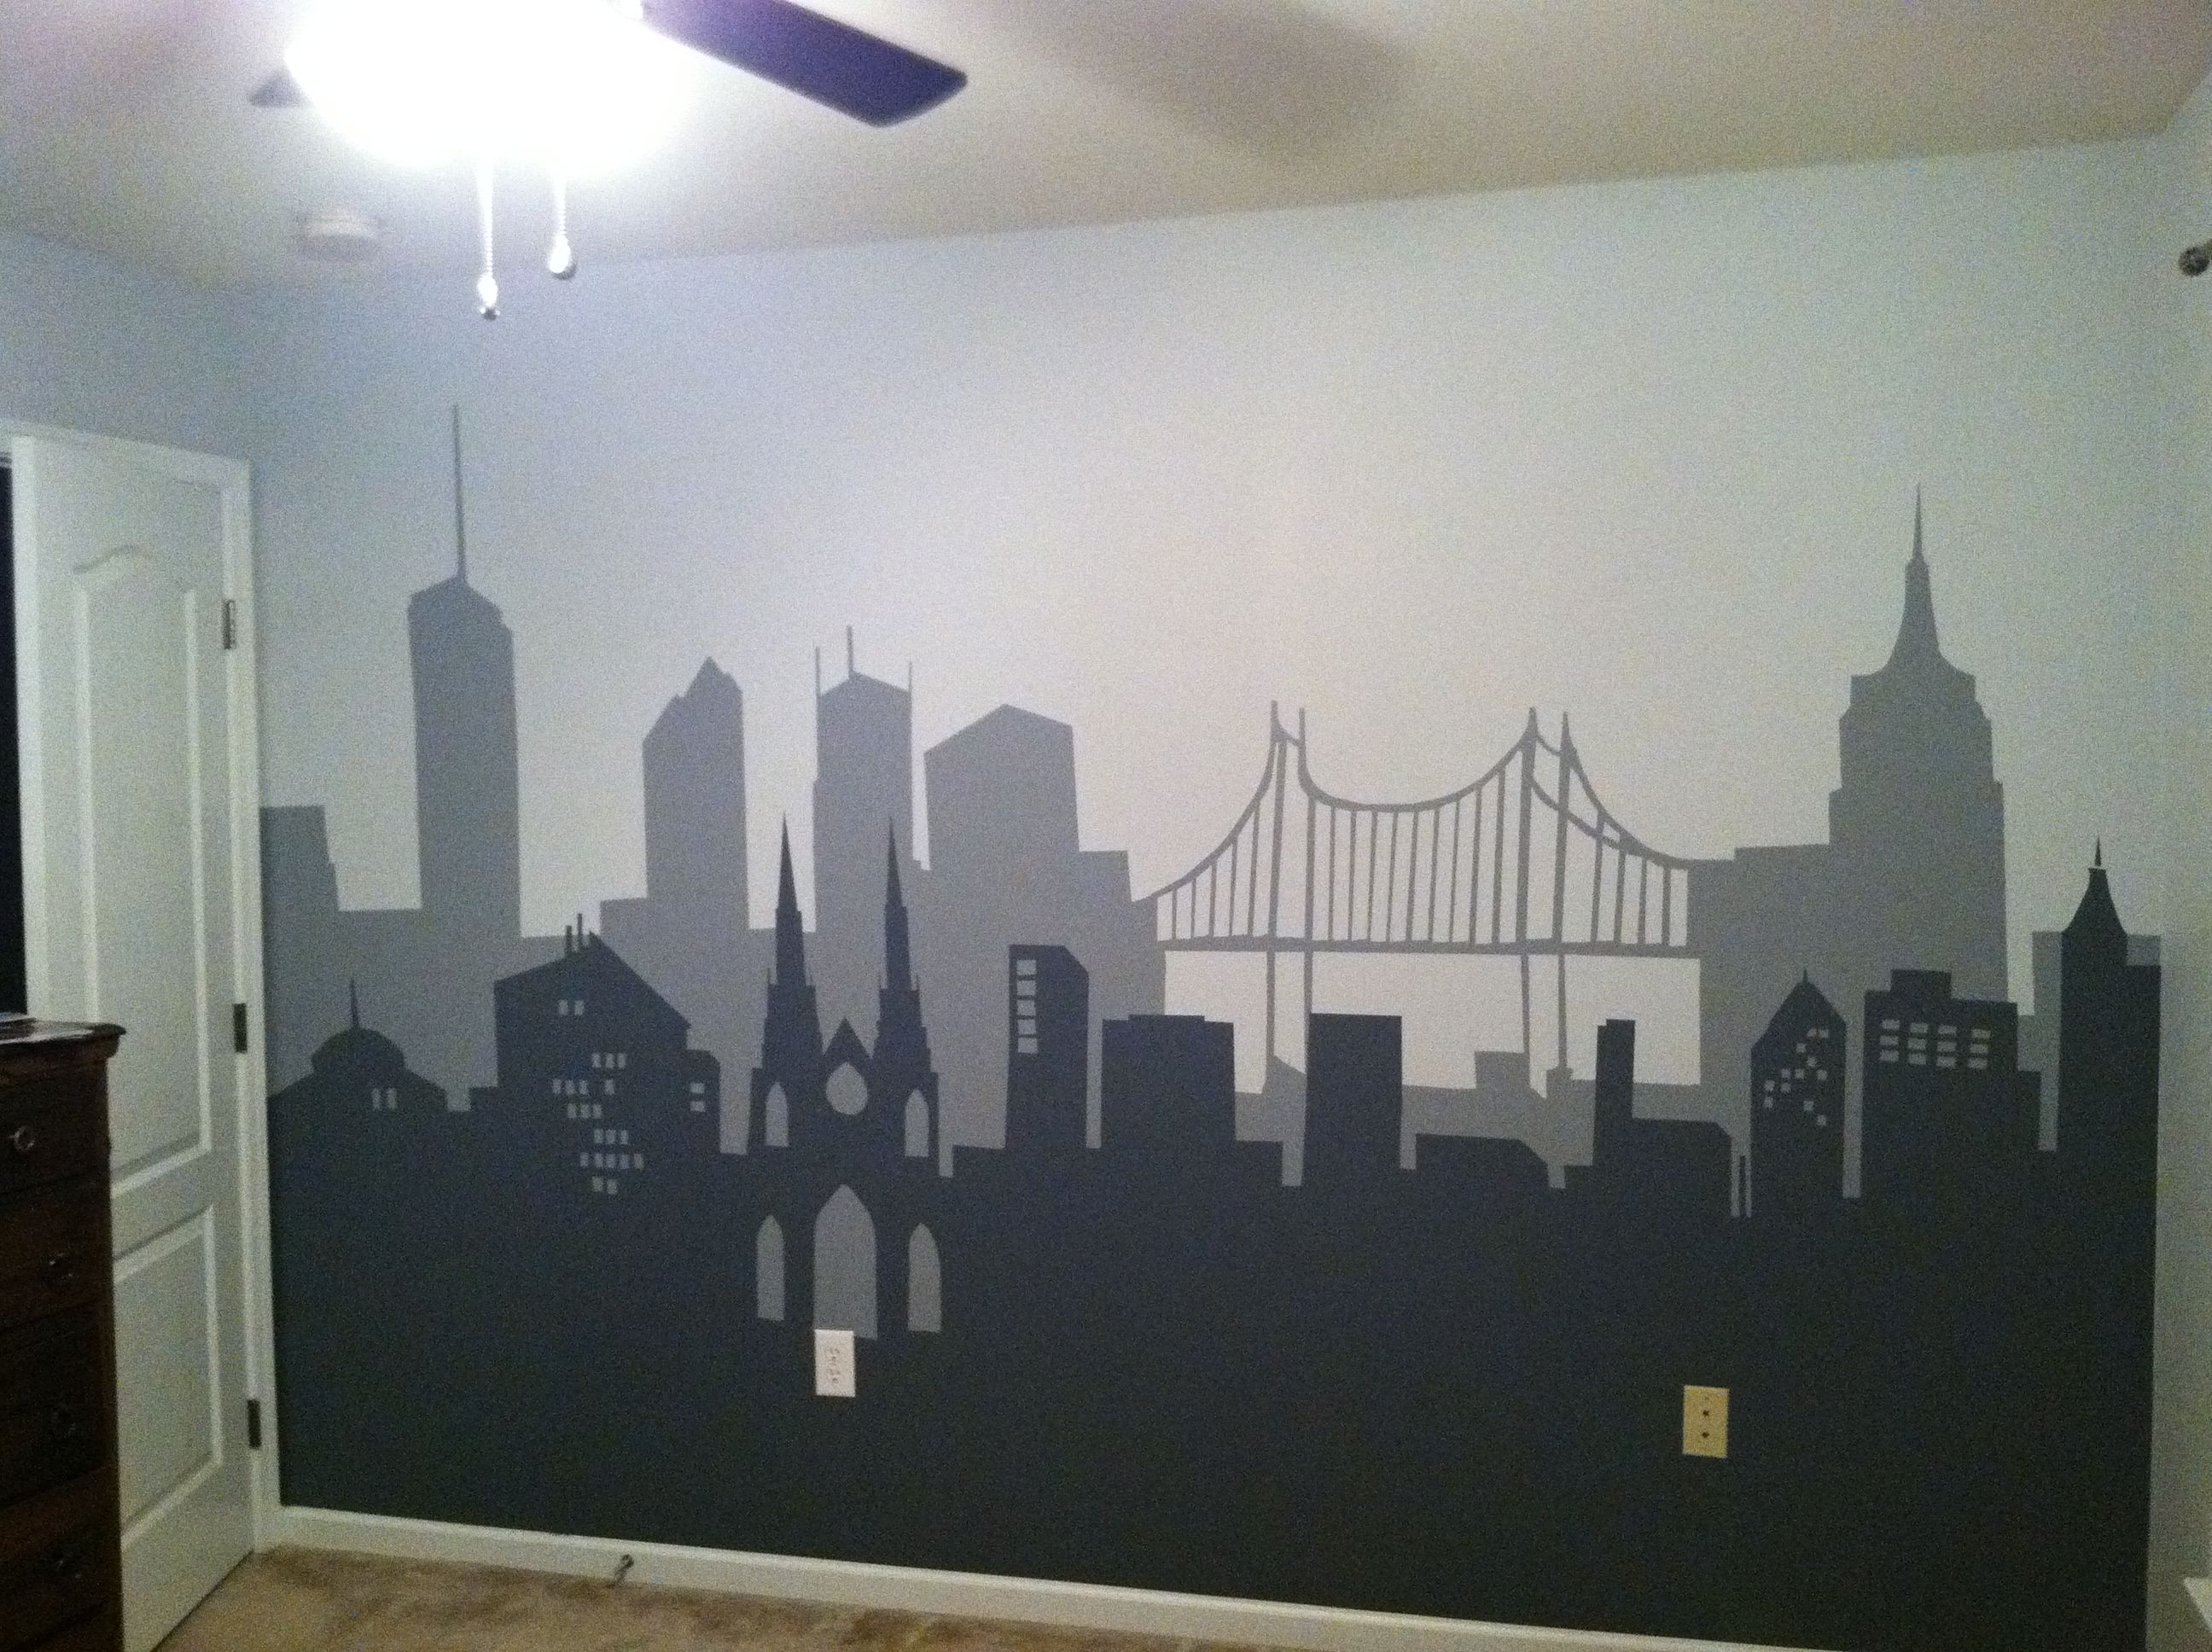 Batman bedroom i painted for son using clipart silhouettes painters tape and a craft projector